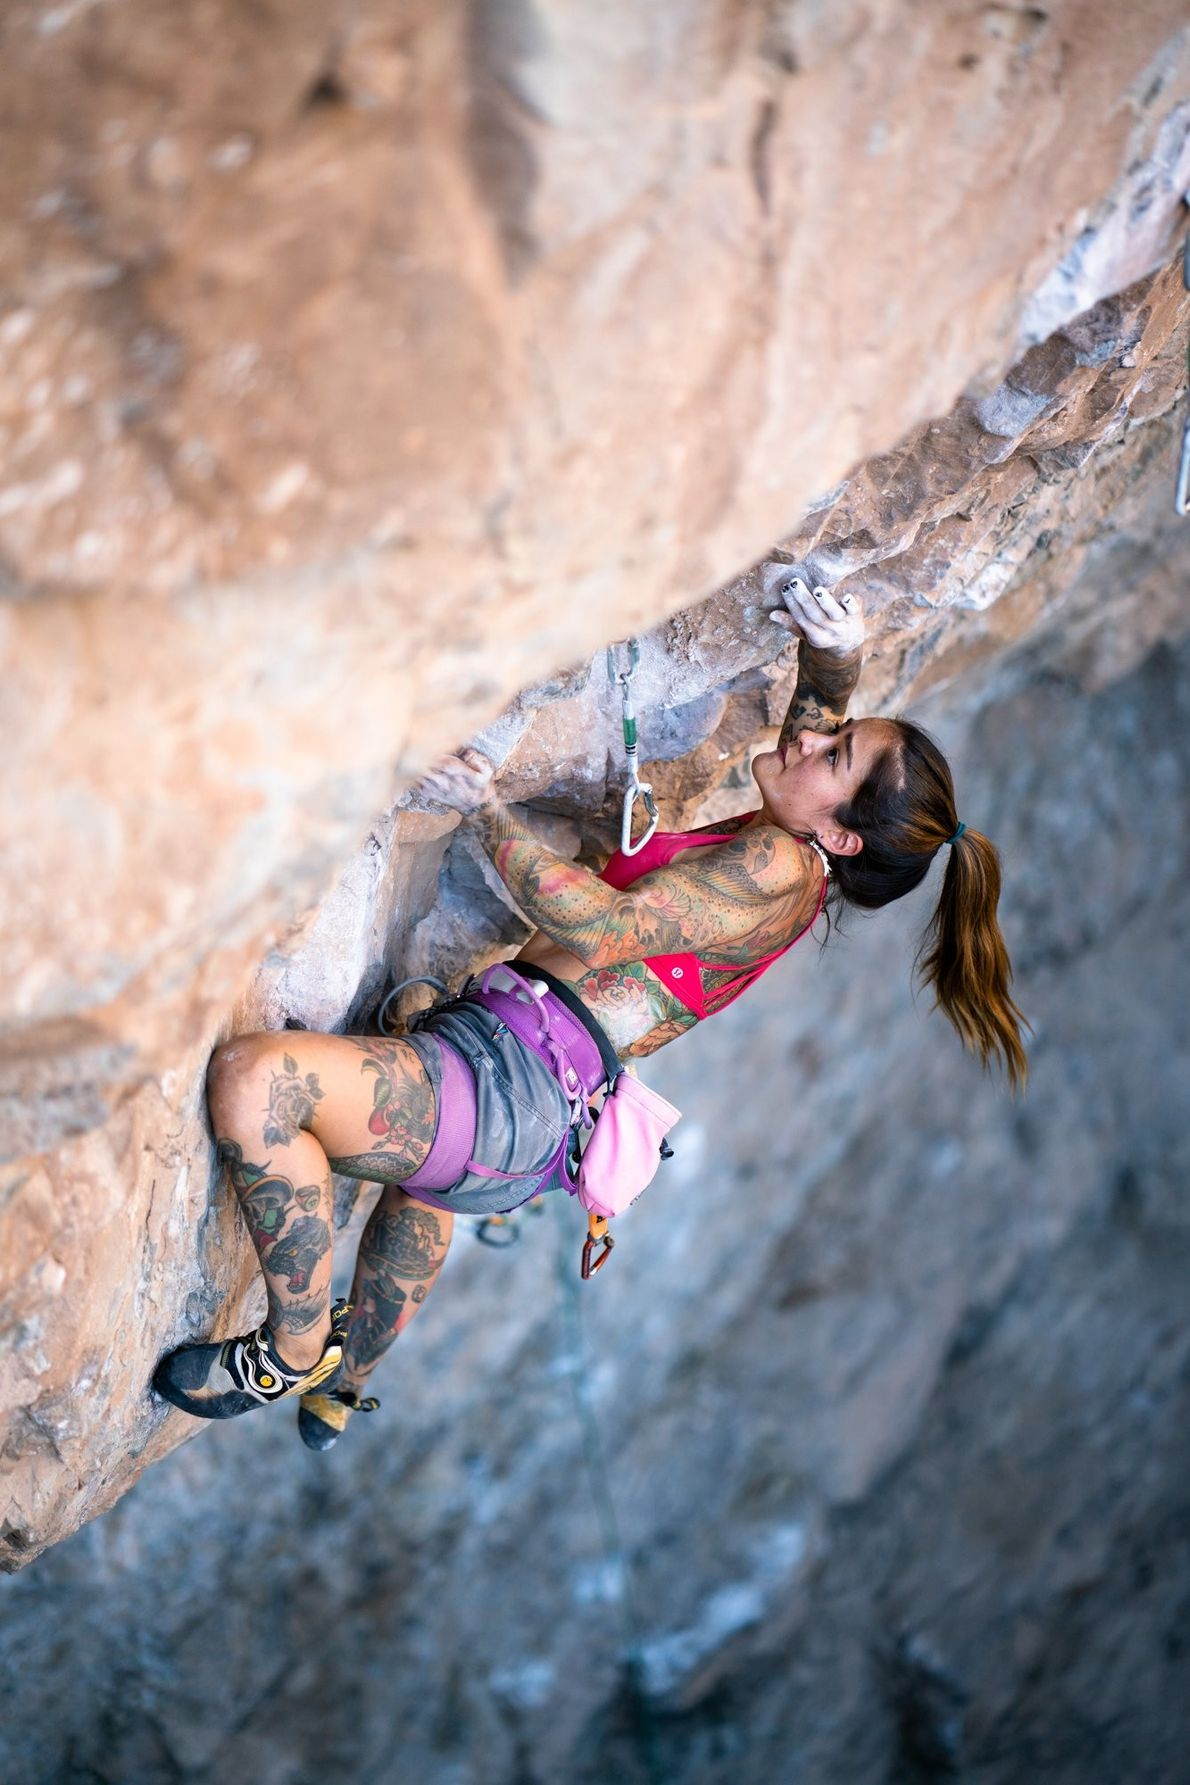 Your Shot photographer Tara Kerzhner photographed a woman as she rock climbs in Rifle, Colorado.